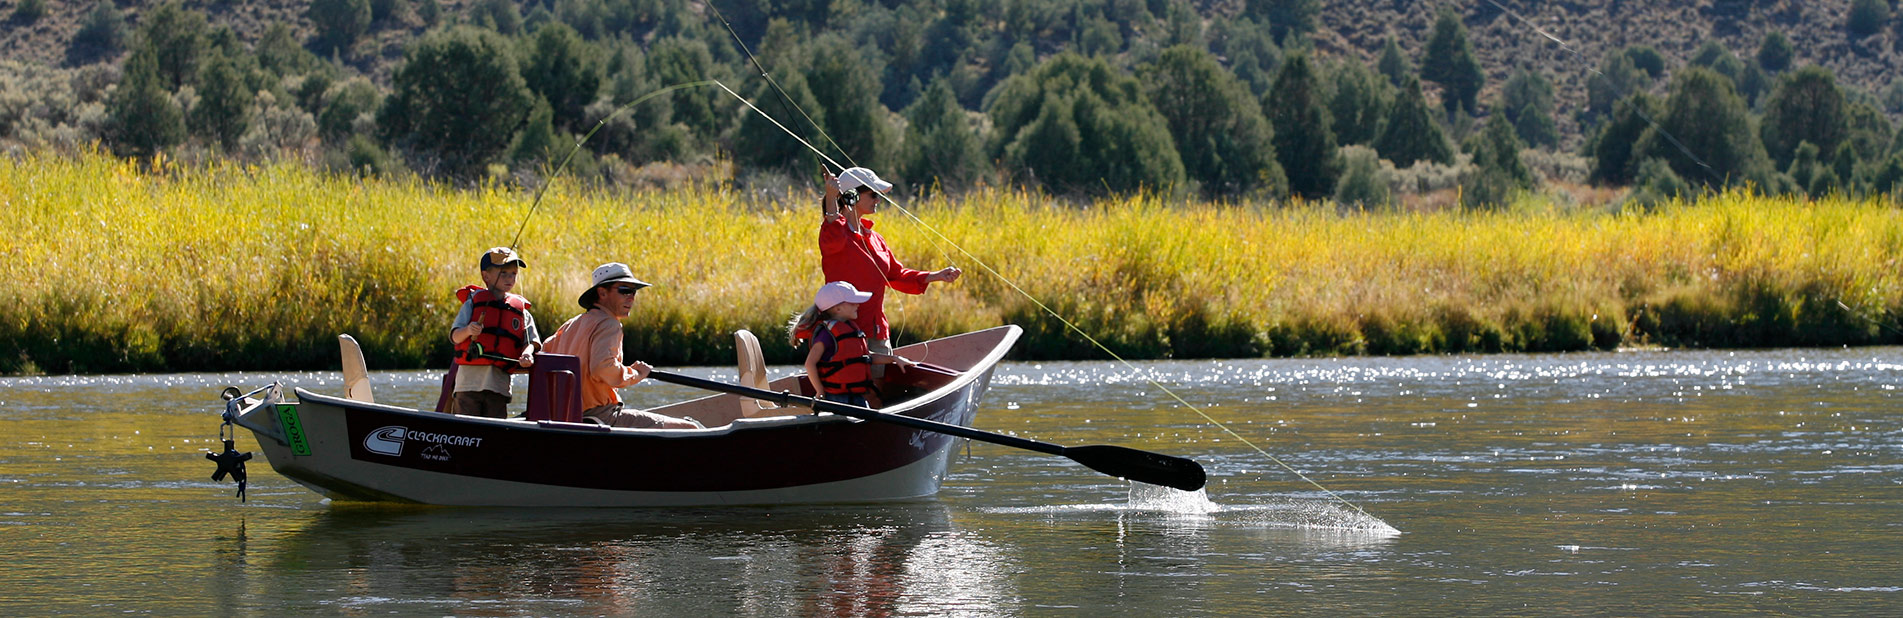 Fishing Store in Fraser, CO | Fly Shop | Fly Fishing Shop